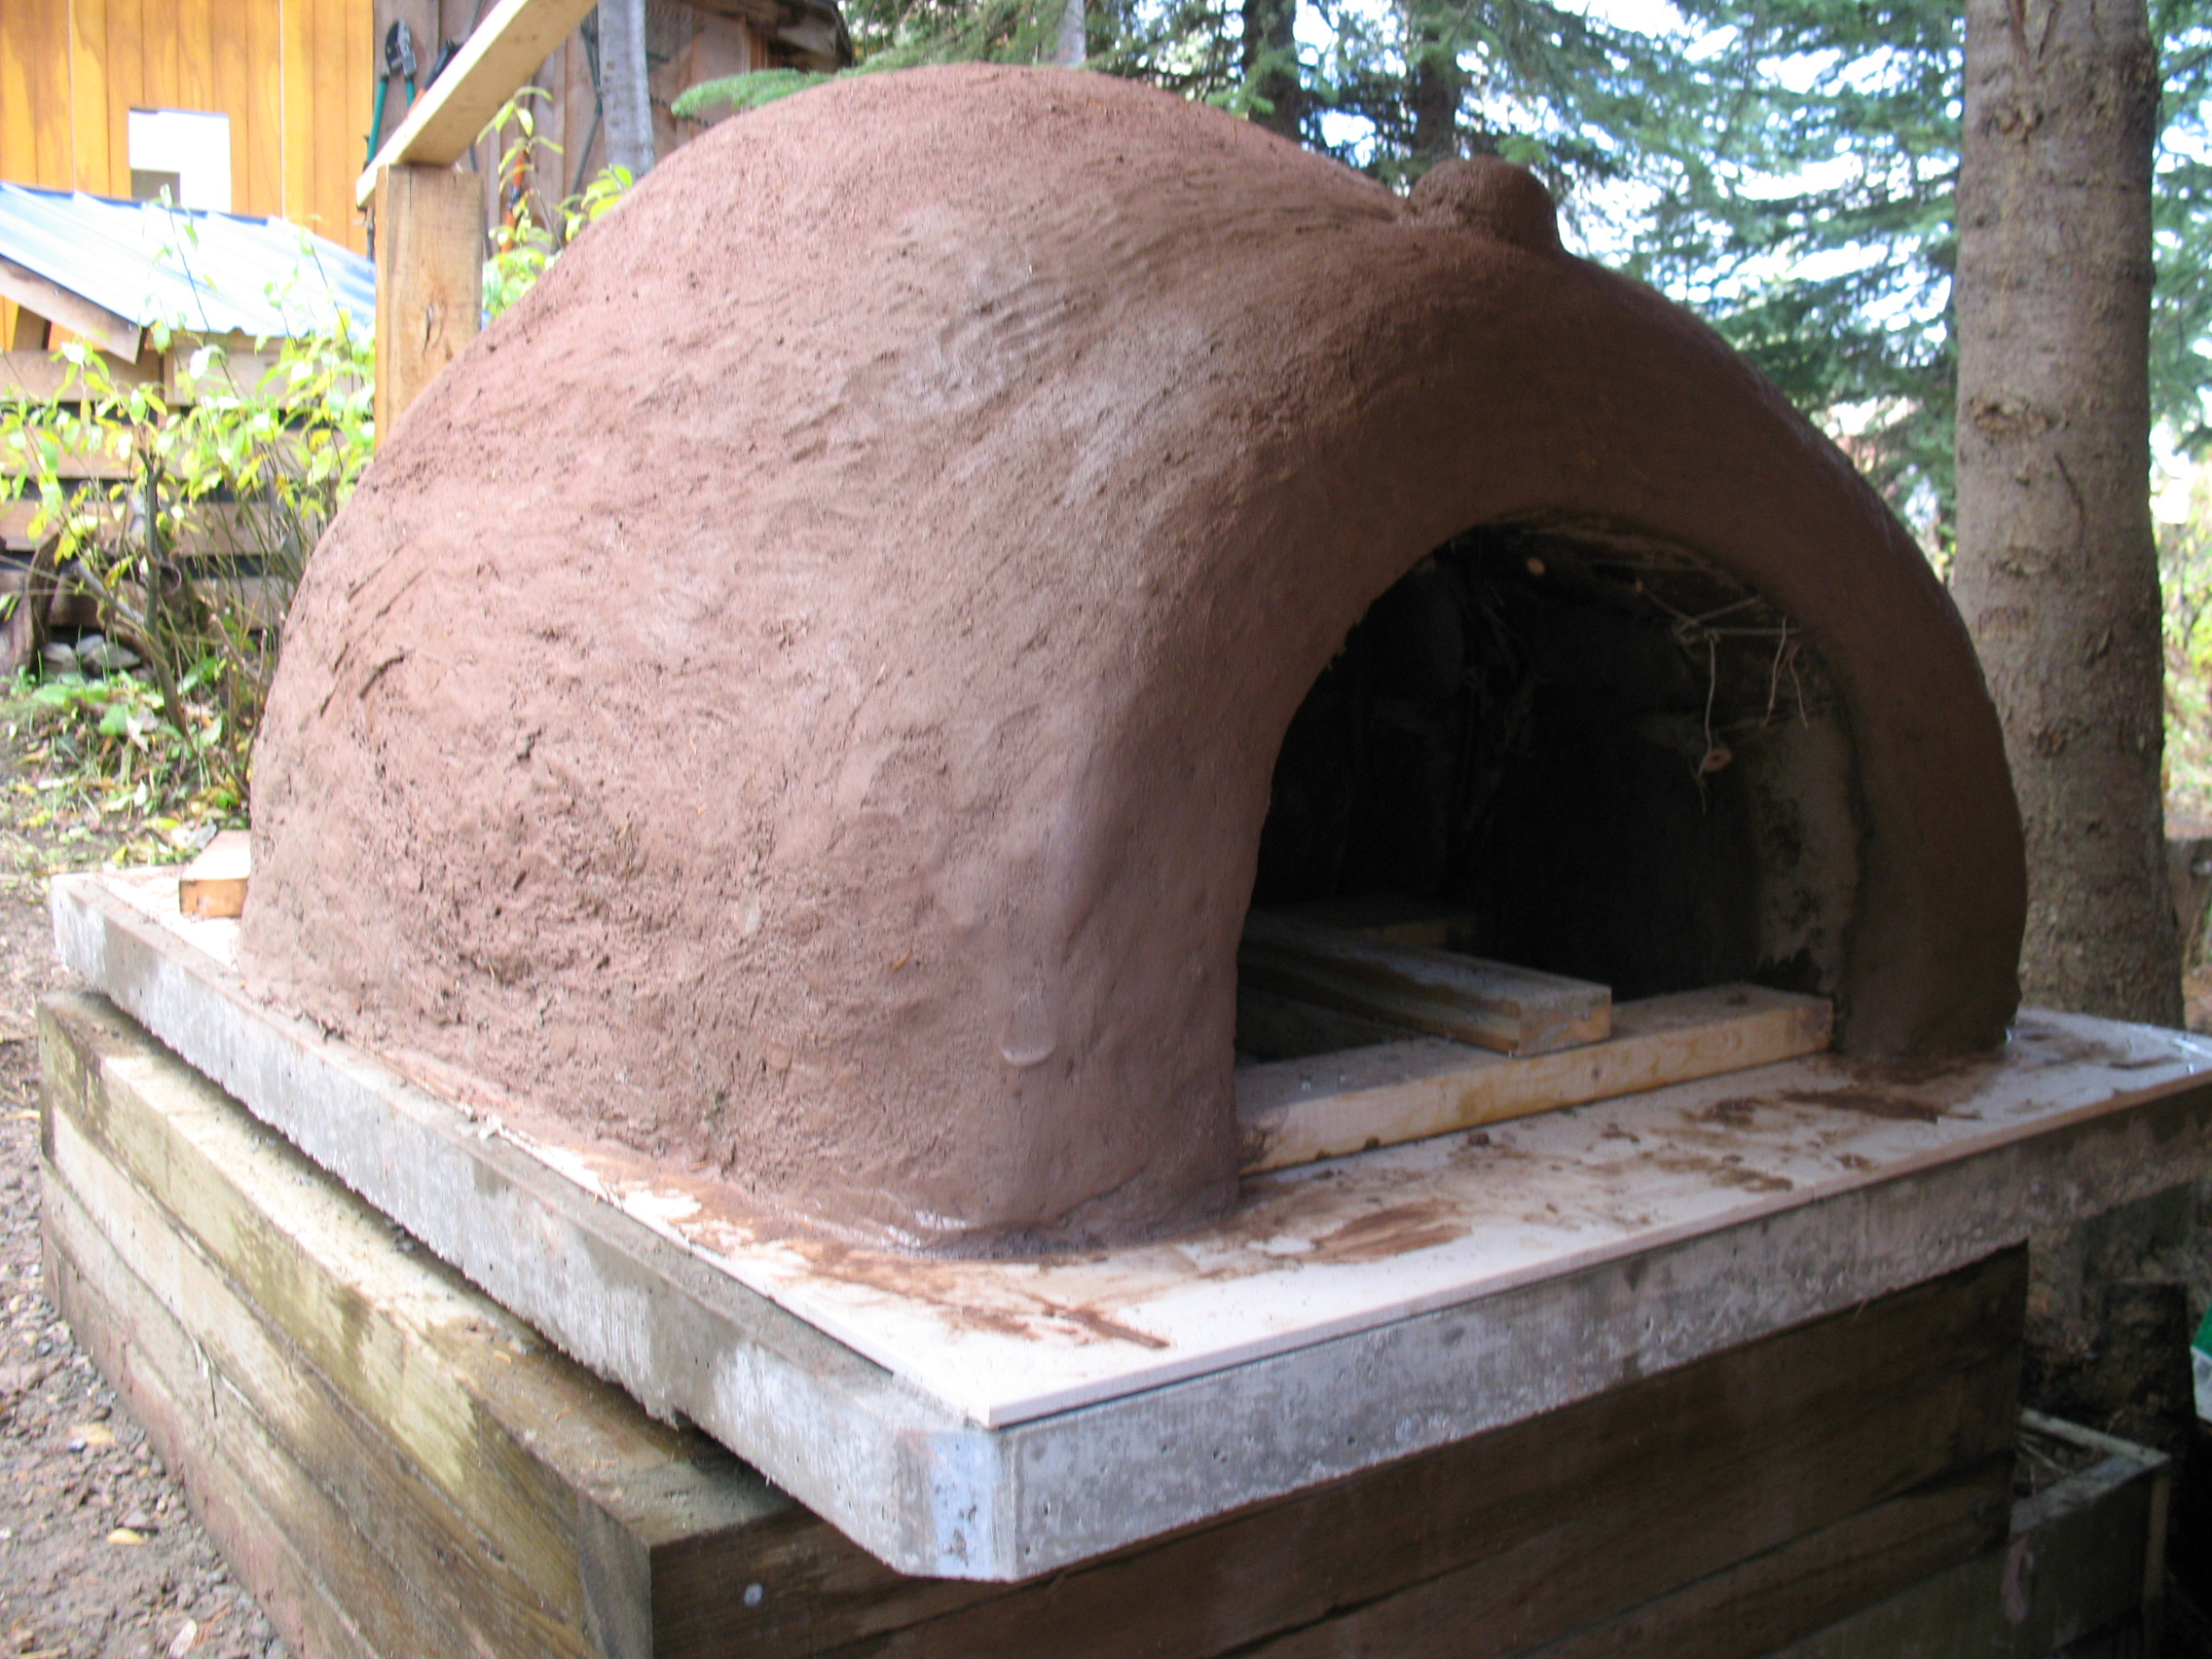 The finished cob oven, still wet.